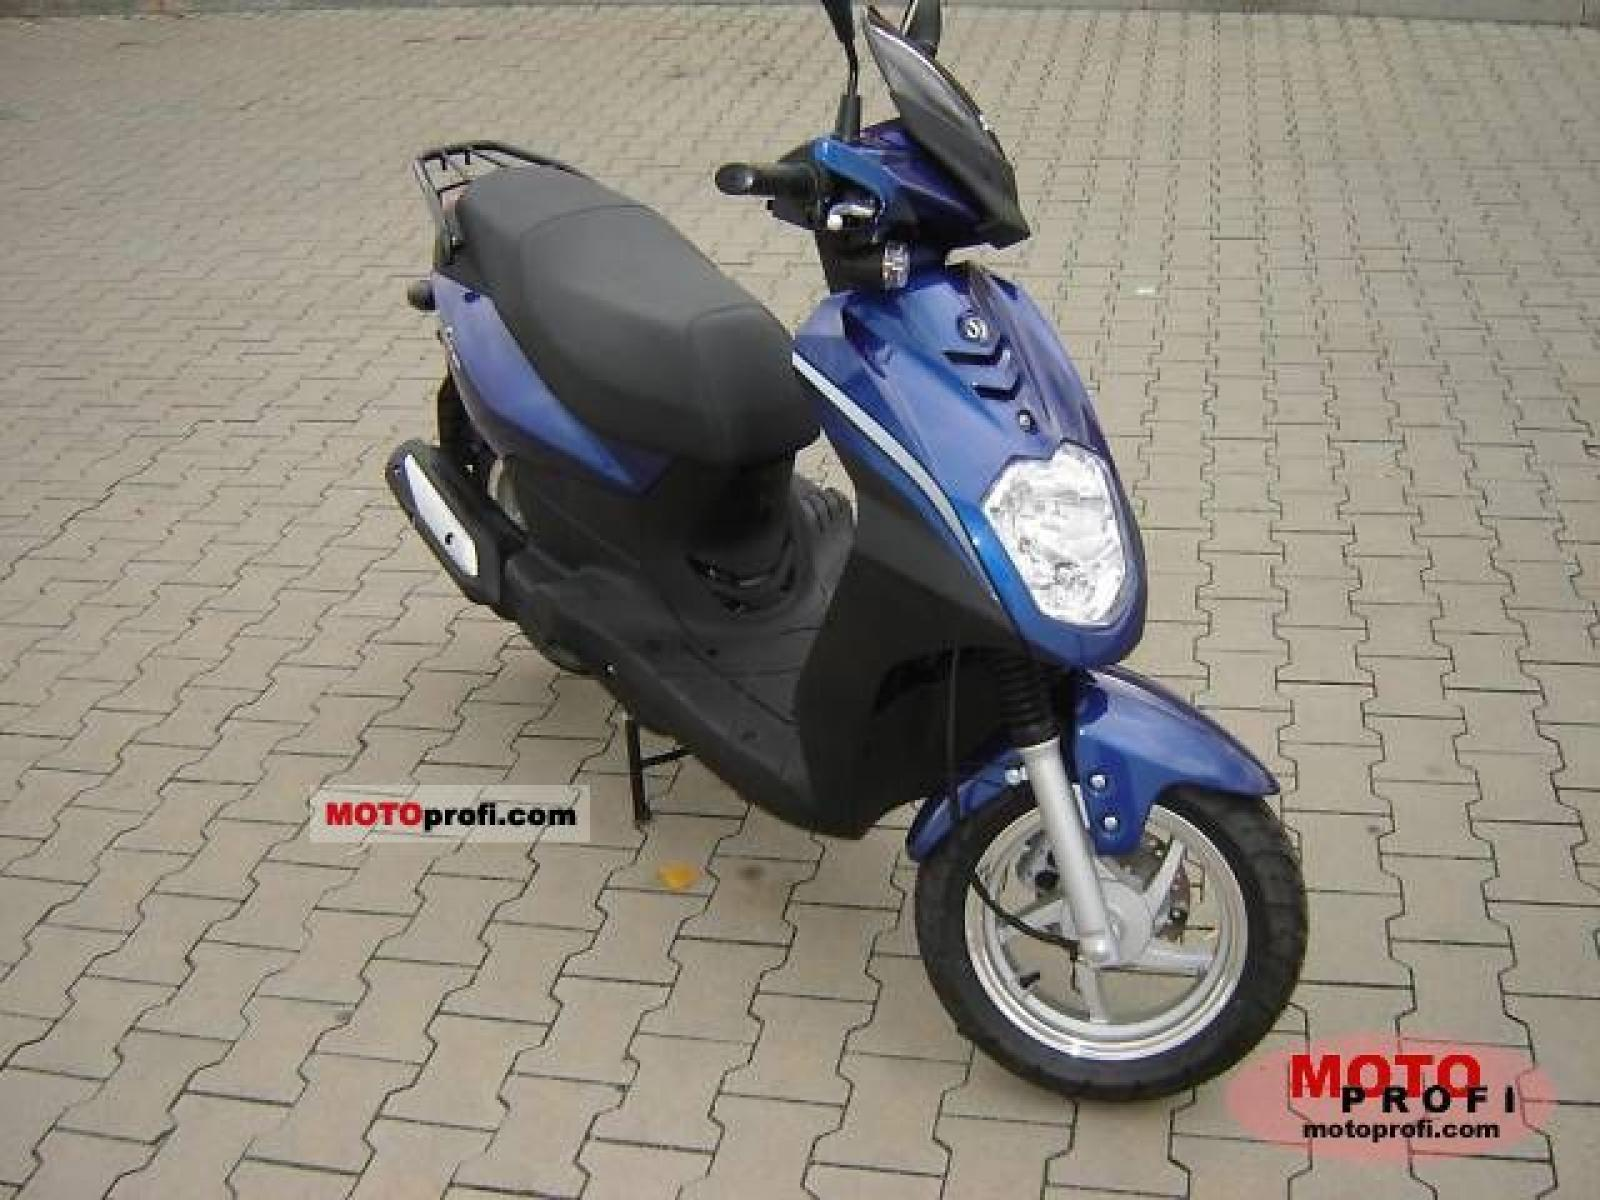 2008 Sym Orbit 125 #2